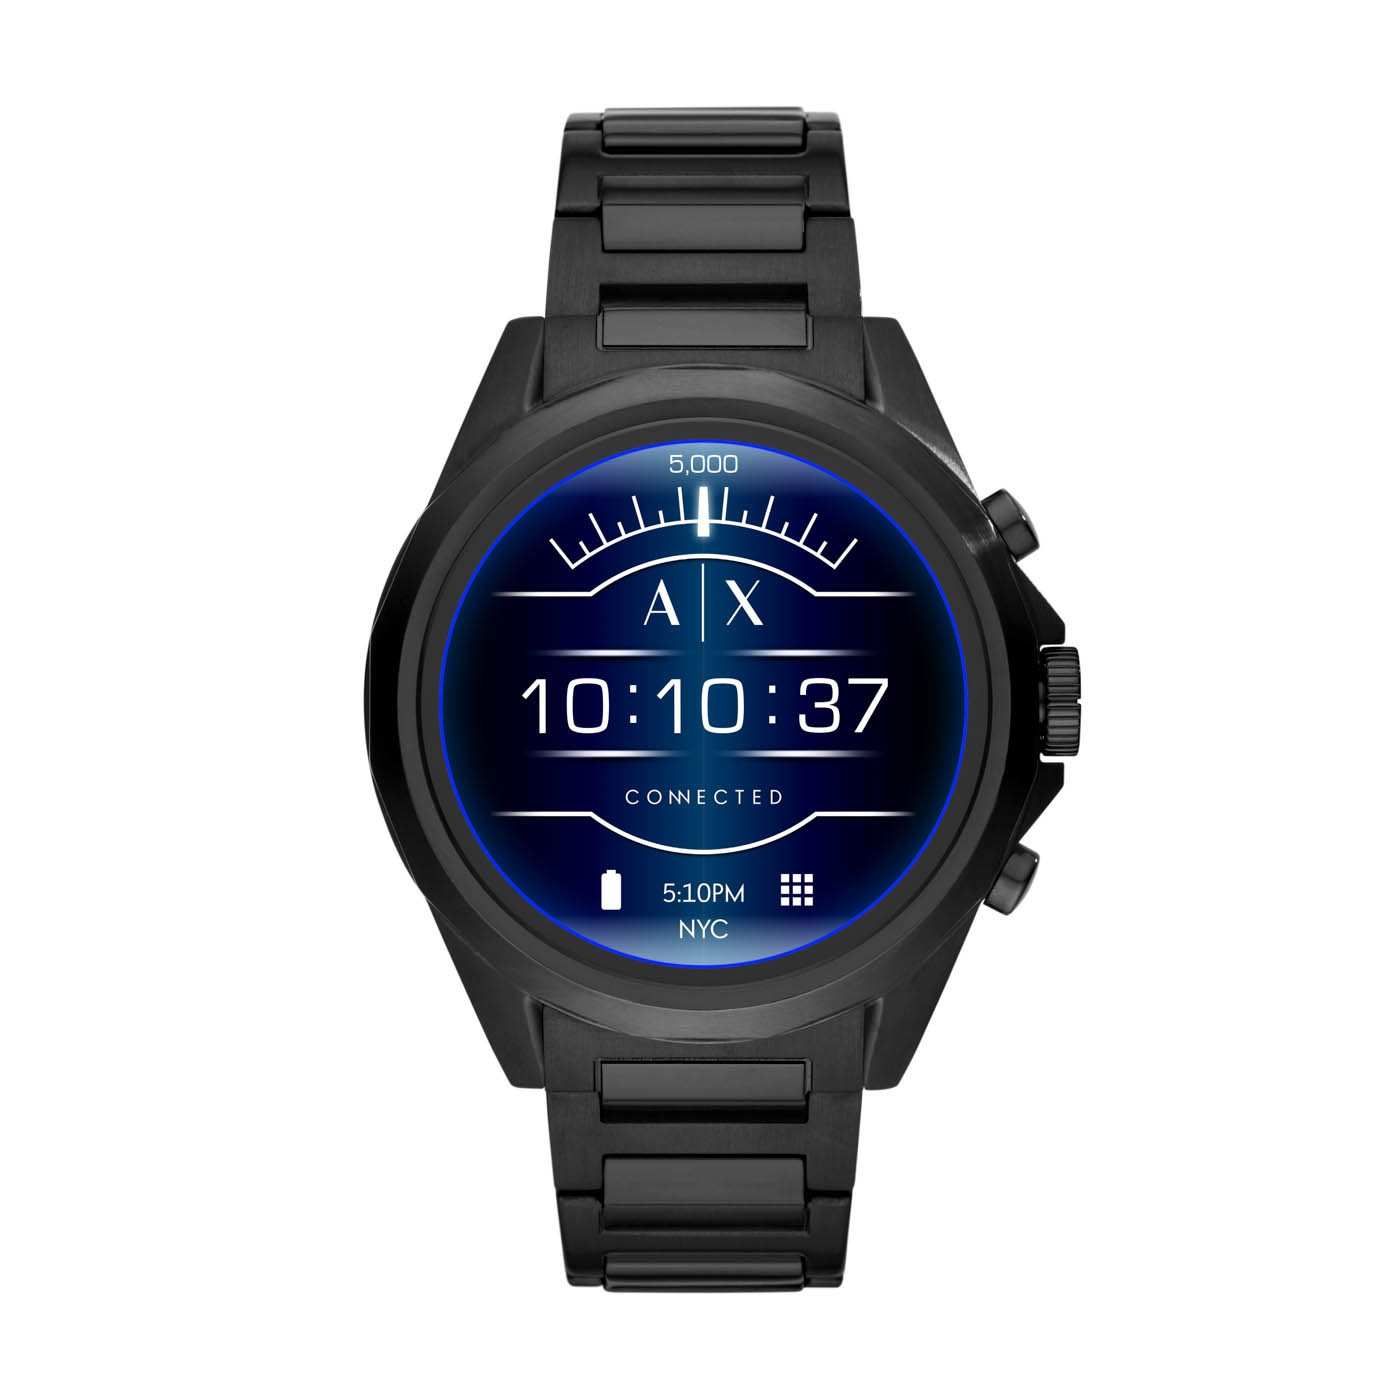 Armani Exchange Connected Drexler Gen 4 Display Smartwatch AXT2002